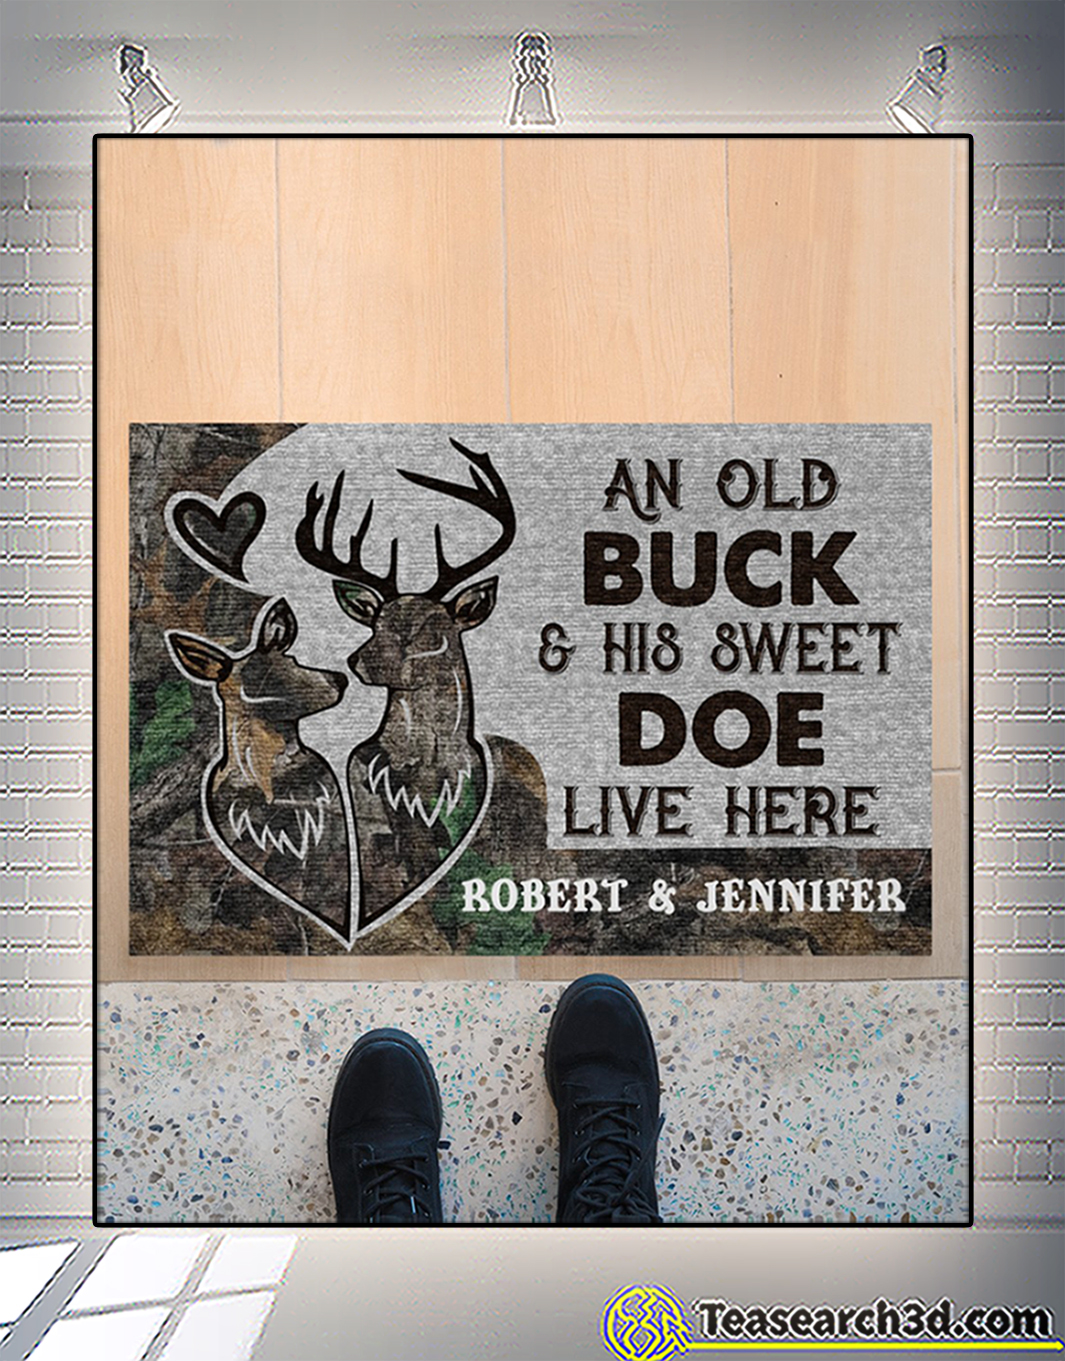 Personalized custom name an old buck and his sweet doe live here doormat 2